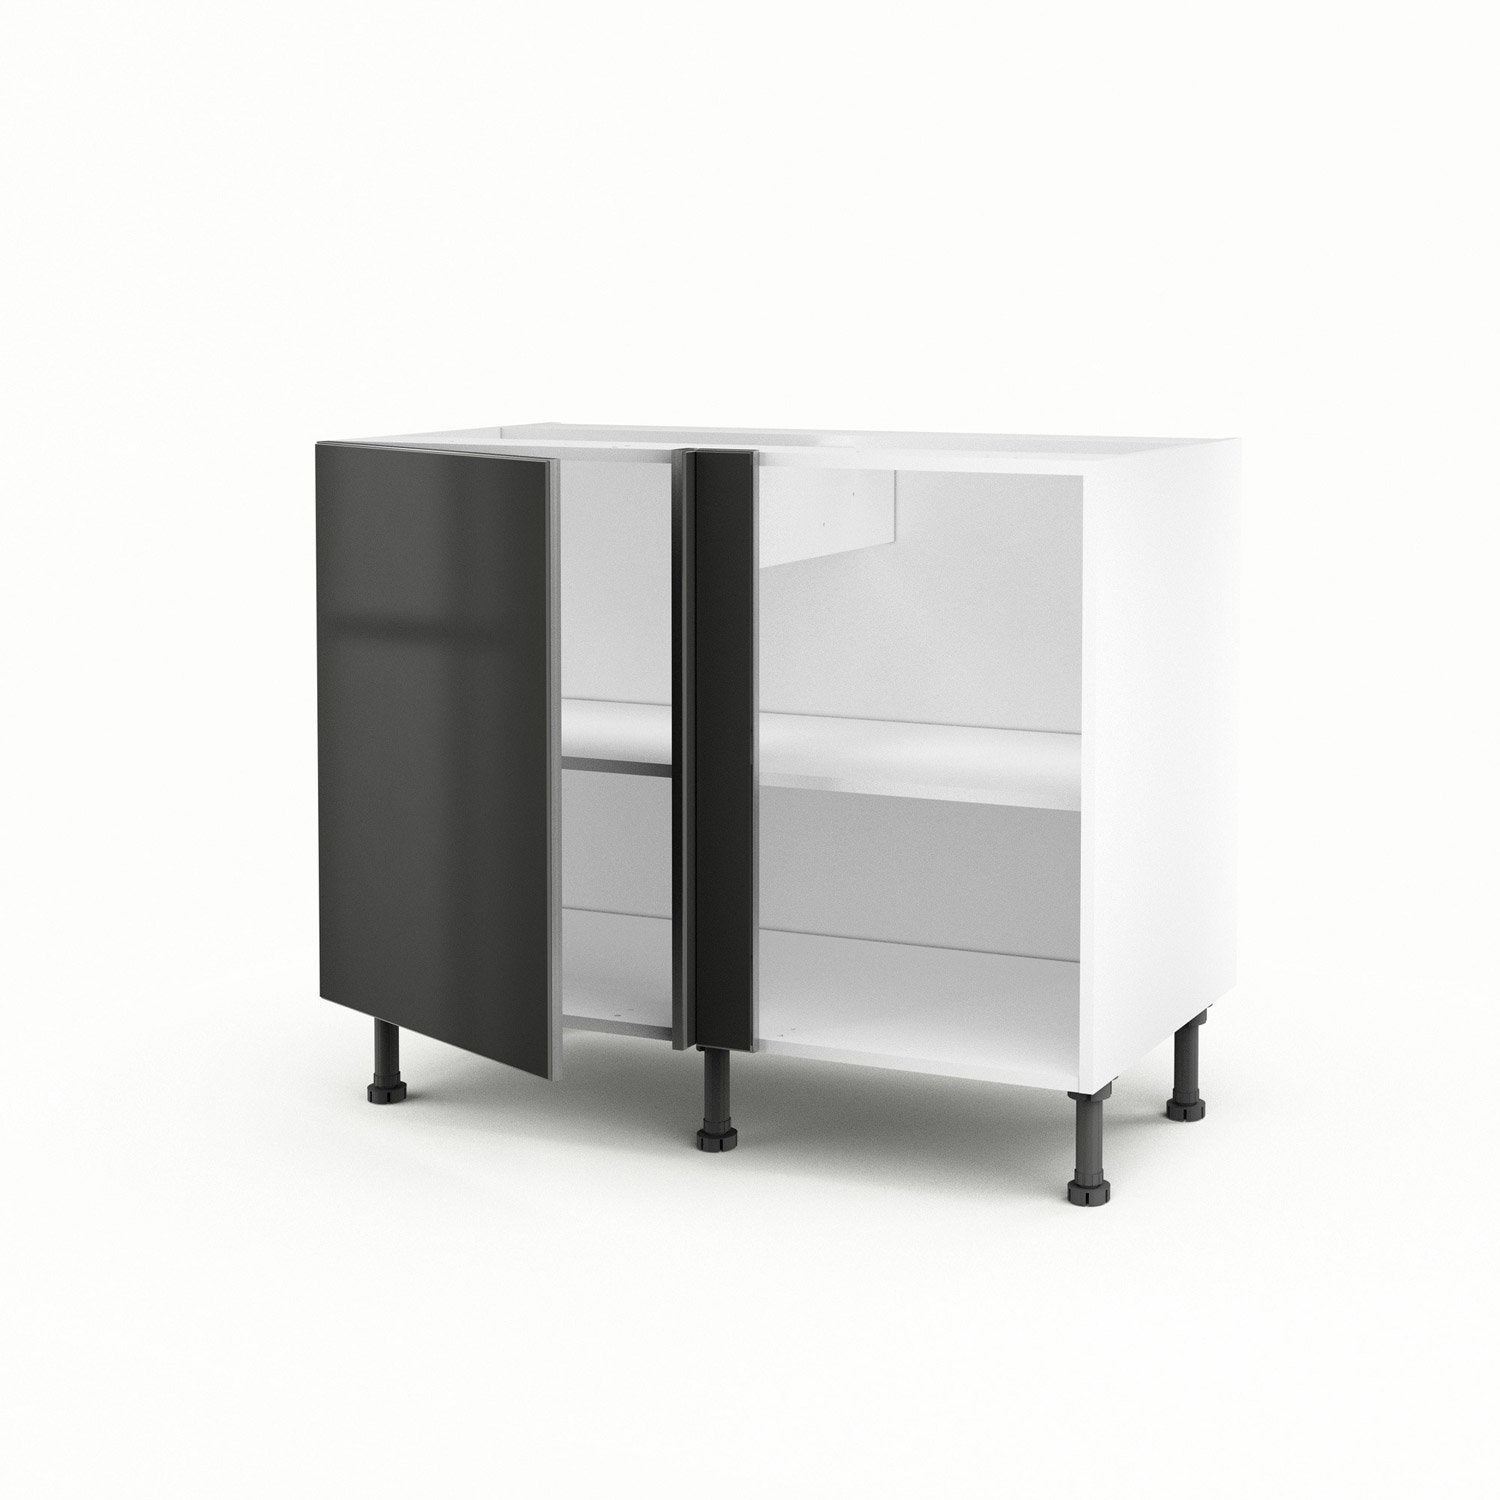 meuble de cuisine bas d 39 angle gris 1 porte frost h70xl100xp56 cm leroy merlin. Black Bedroom Furniture Sets. Home Design Ideas